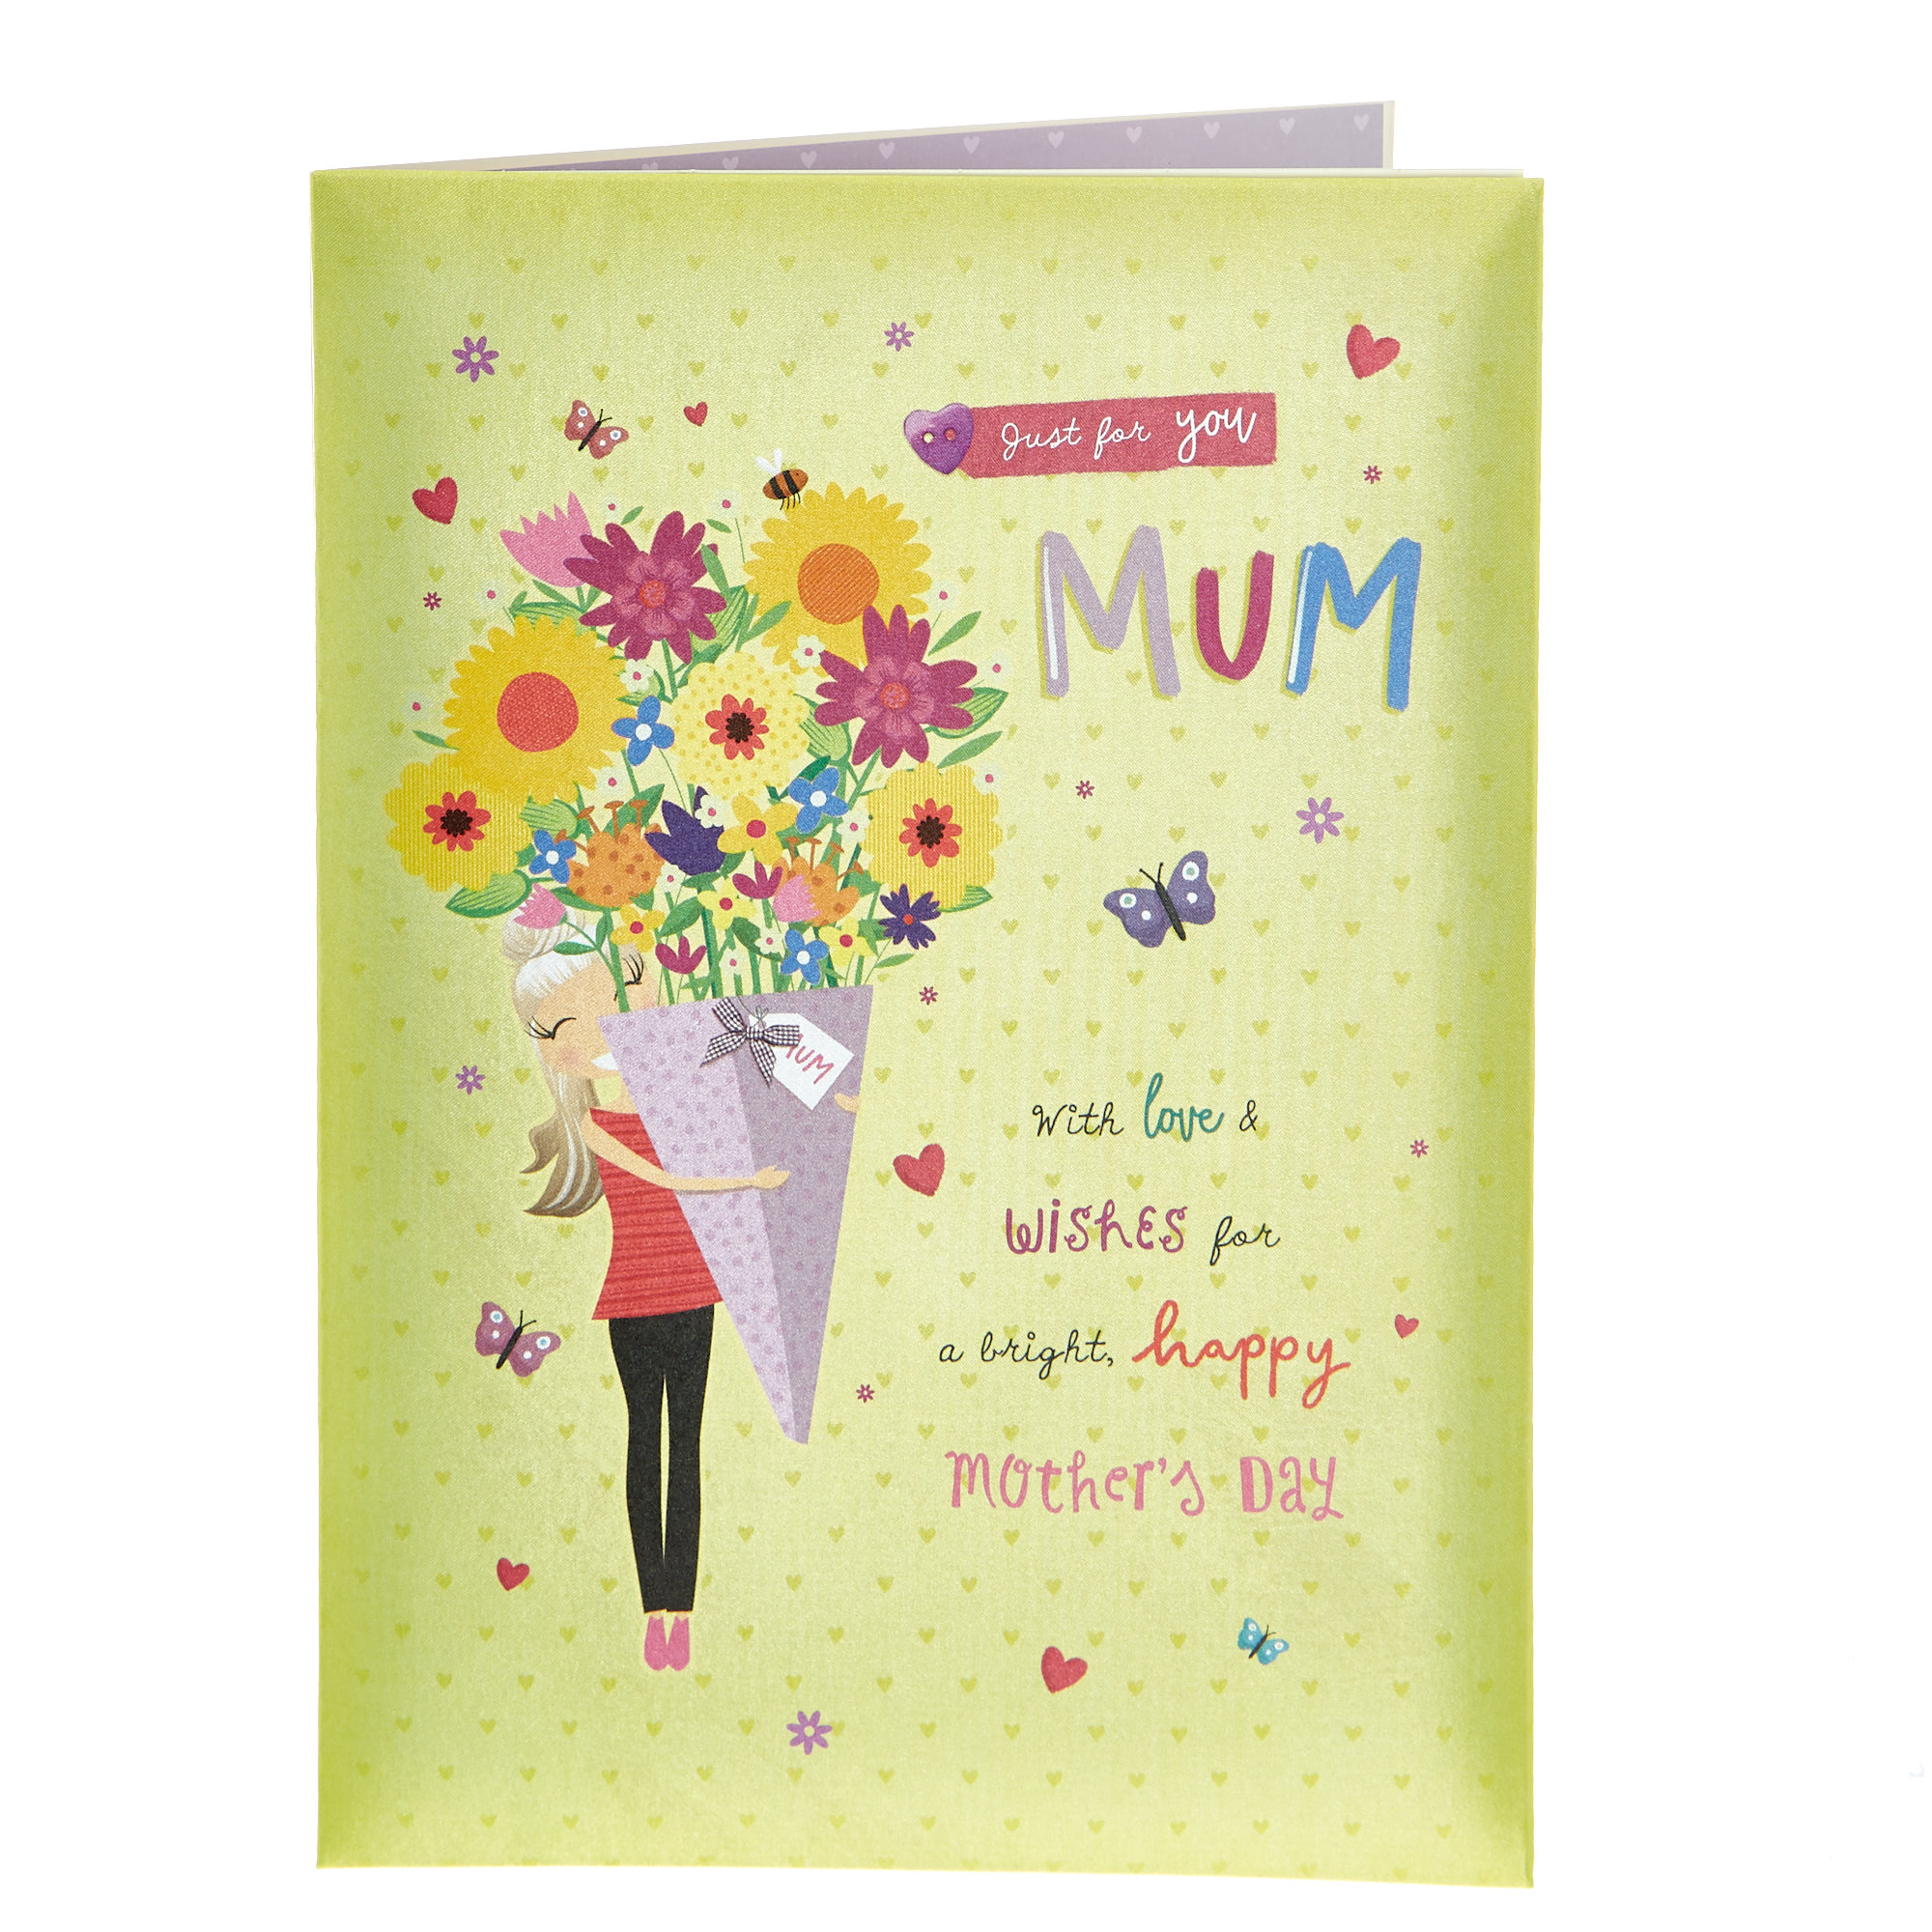 Satin Collection Mother's Day Card - Just For You Mum